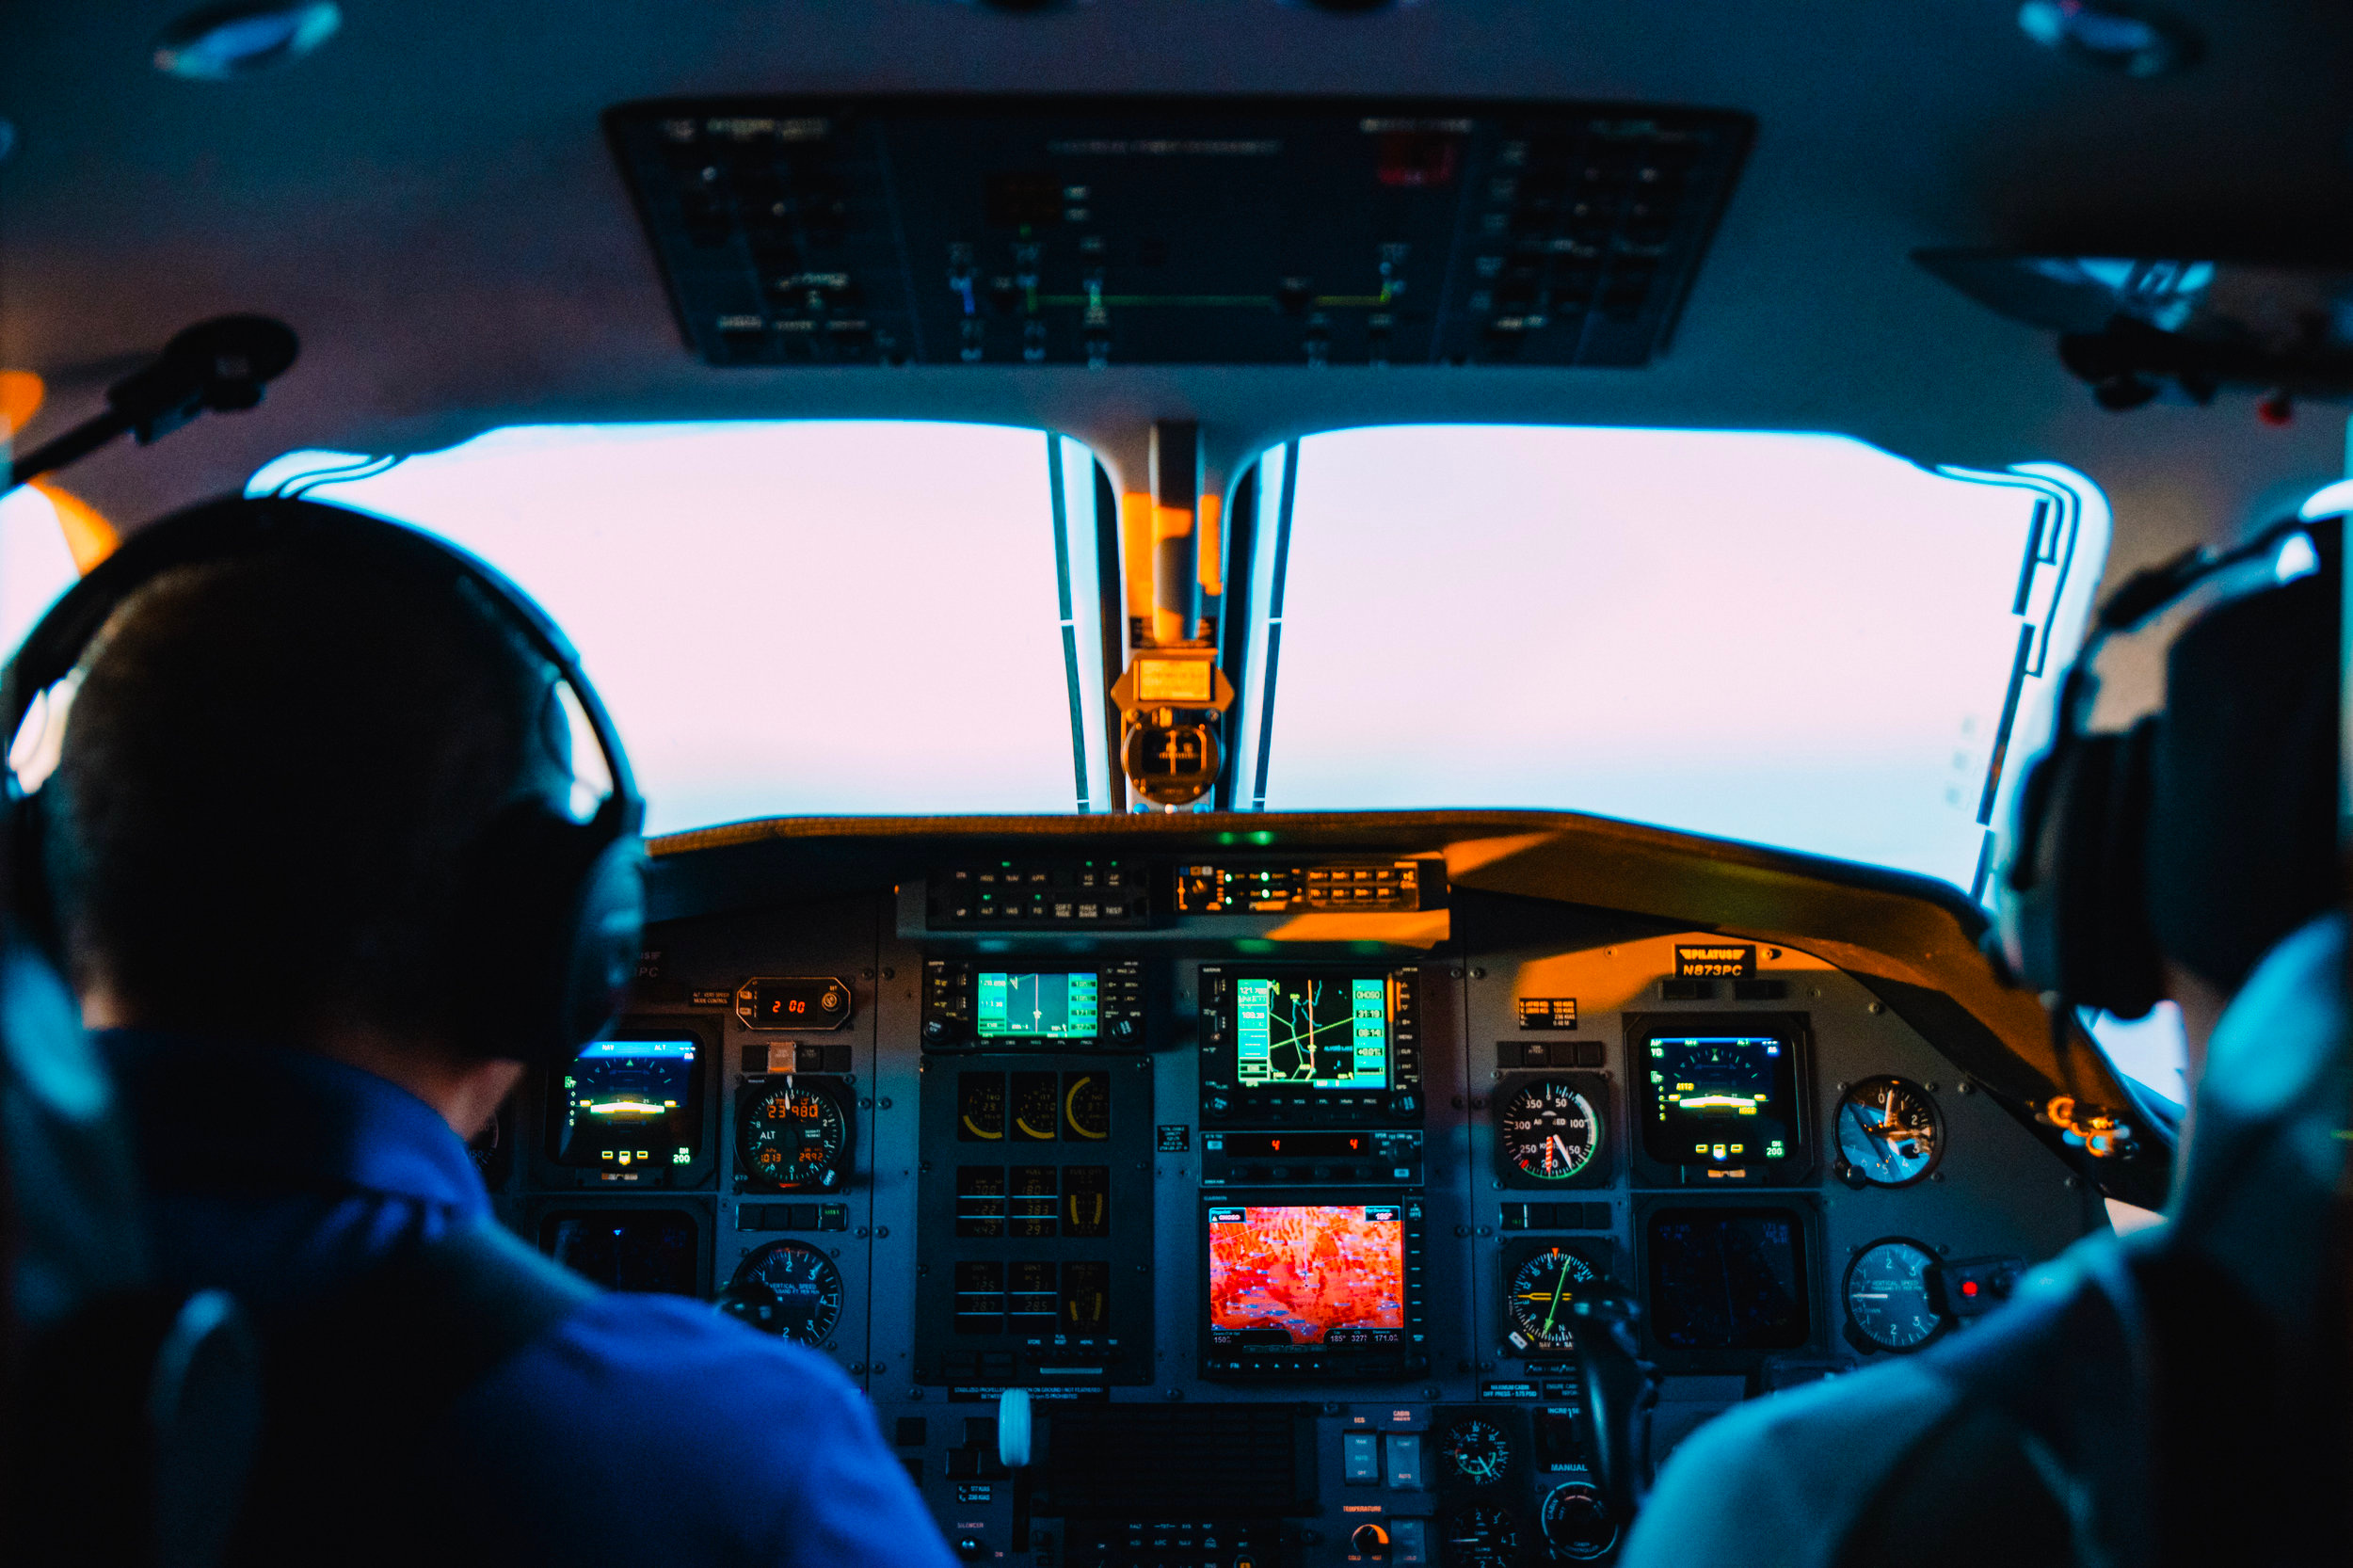 There are TWO aviation careers on this list of jobs that require  no college education  and pay   over $75,000  .  https://www.cnbc.com/2019/01/25/tk-jobs-that-pay-more-than-75000-that-you-can-get-without-a-bachelors-degree.html